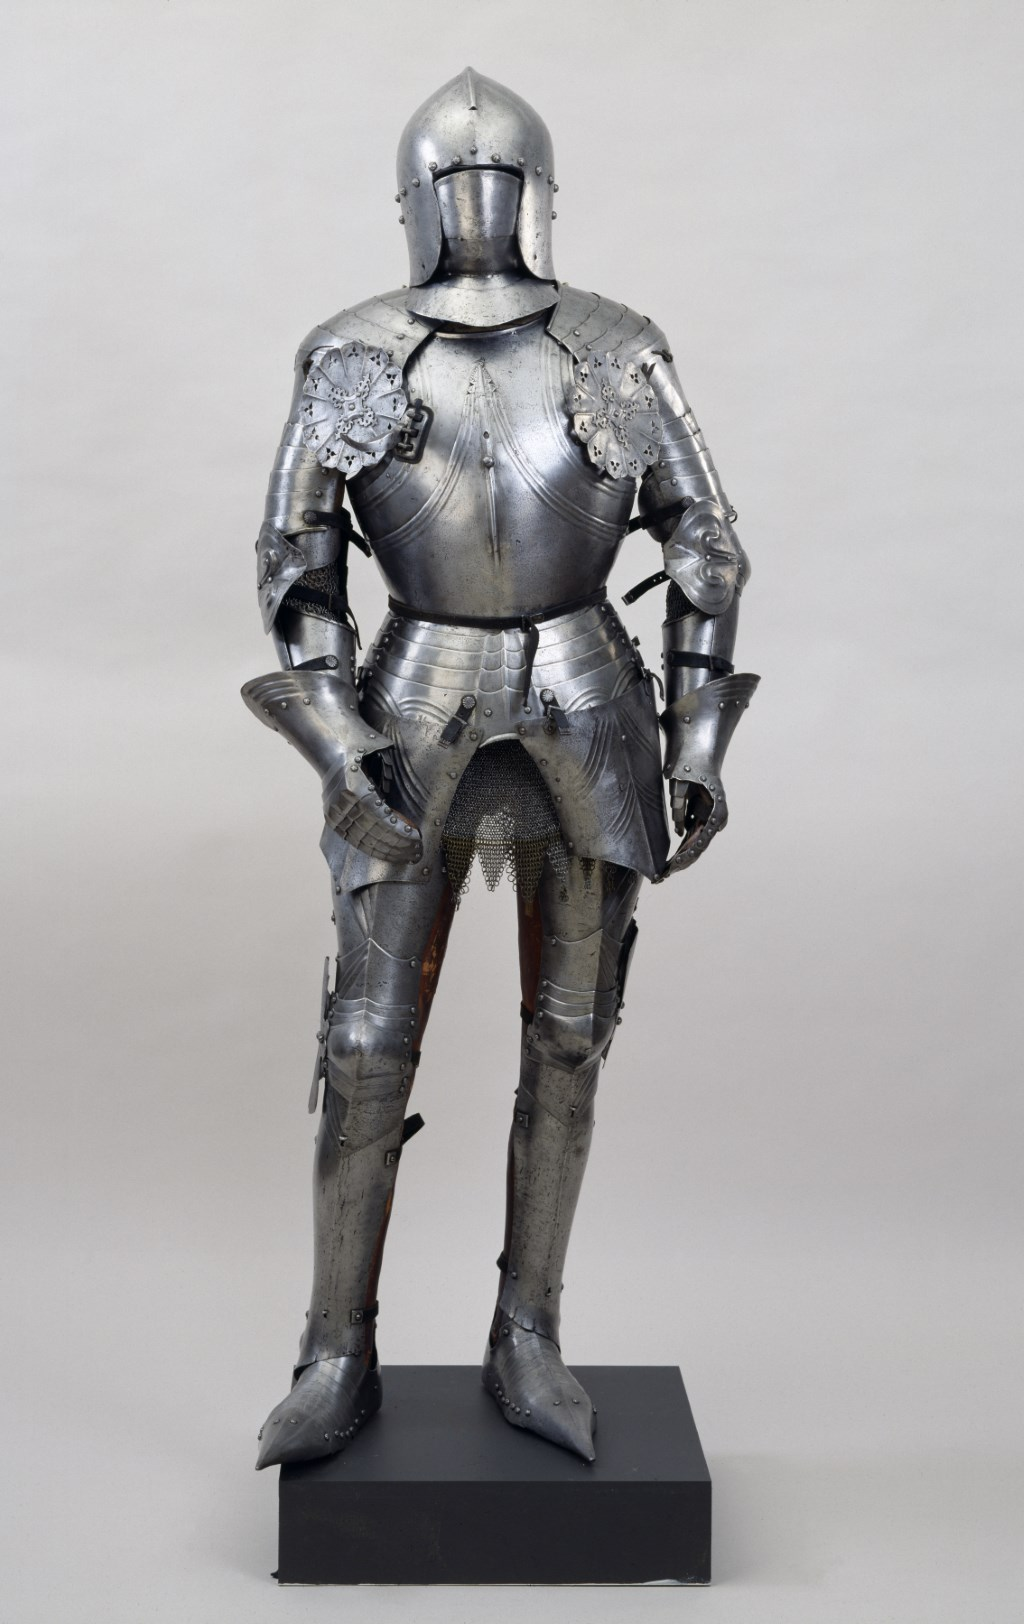 Late Armor | Weapons and Warfare